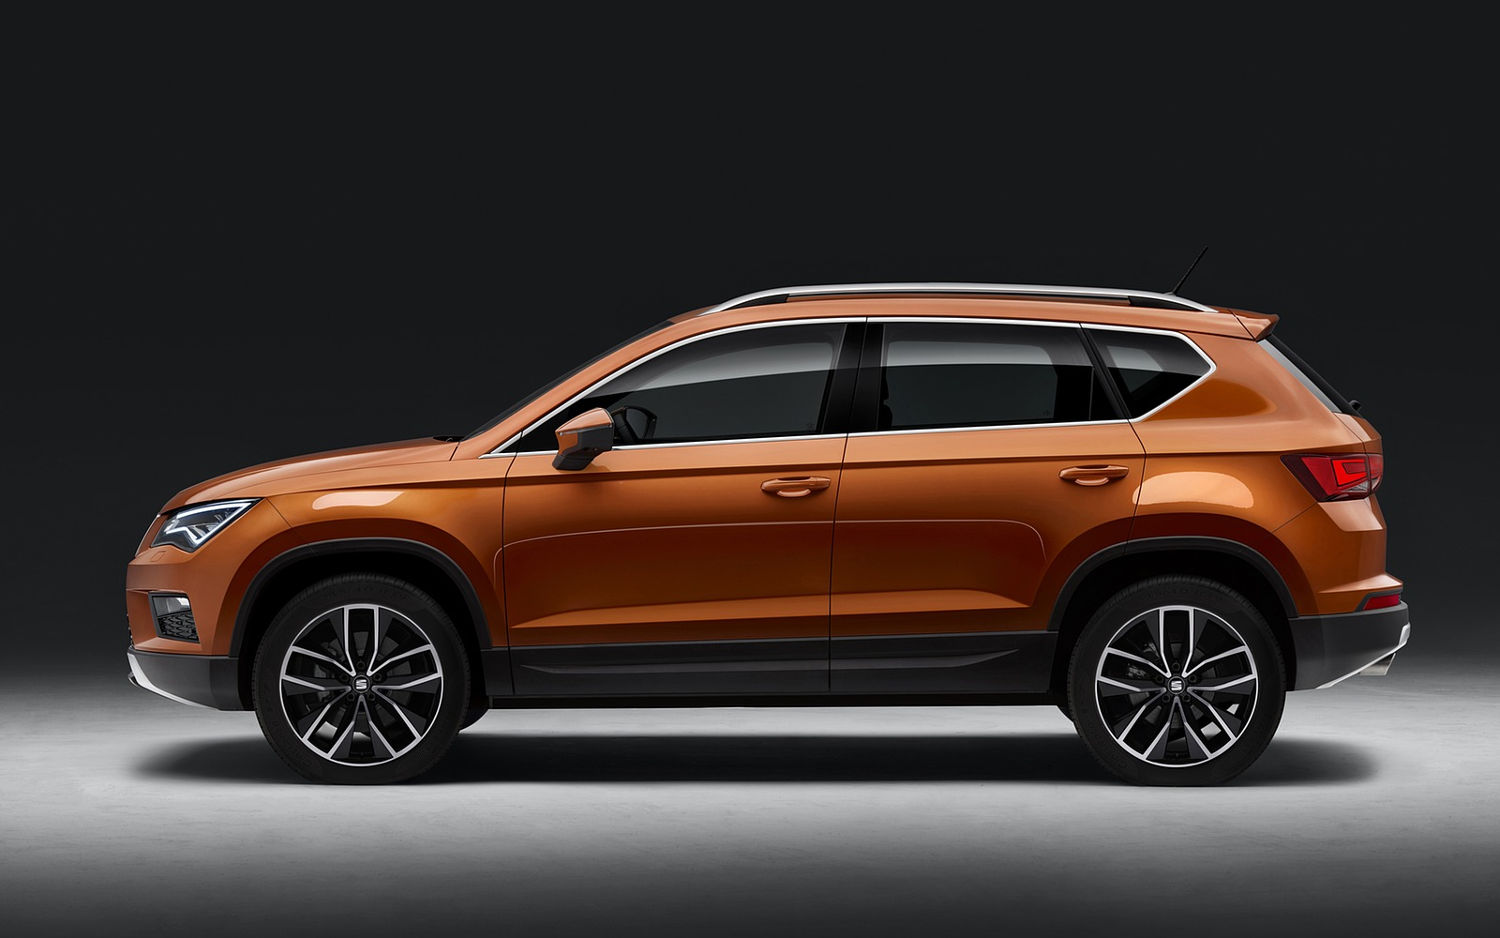 Comparison  Skoda Karoq 4×4 2018  Vs  Seat Ateca